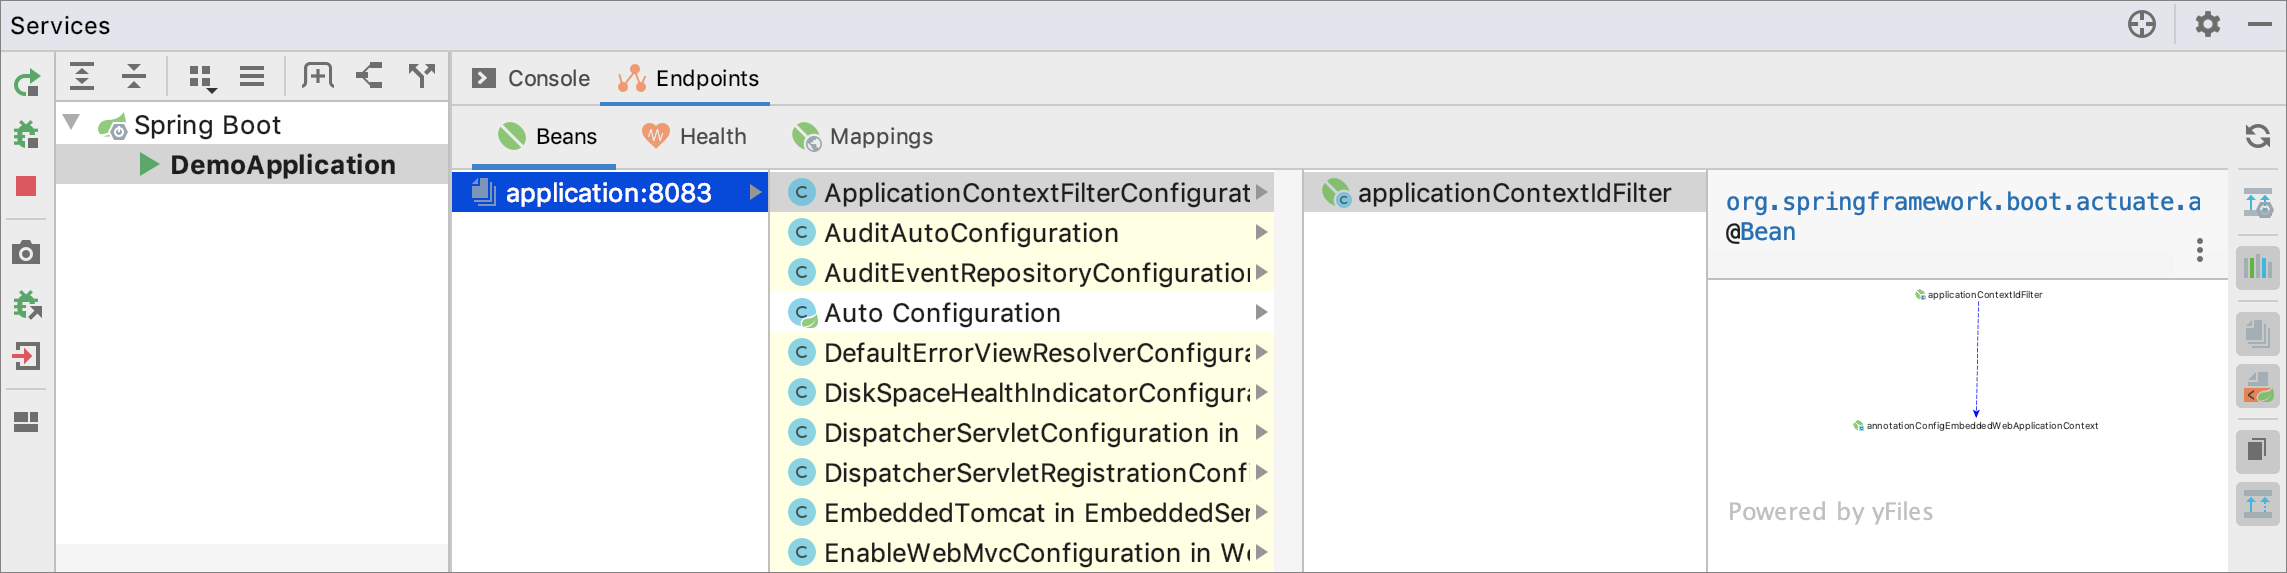 Spring endpoints shown in Services tool window